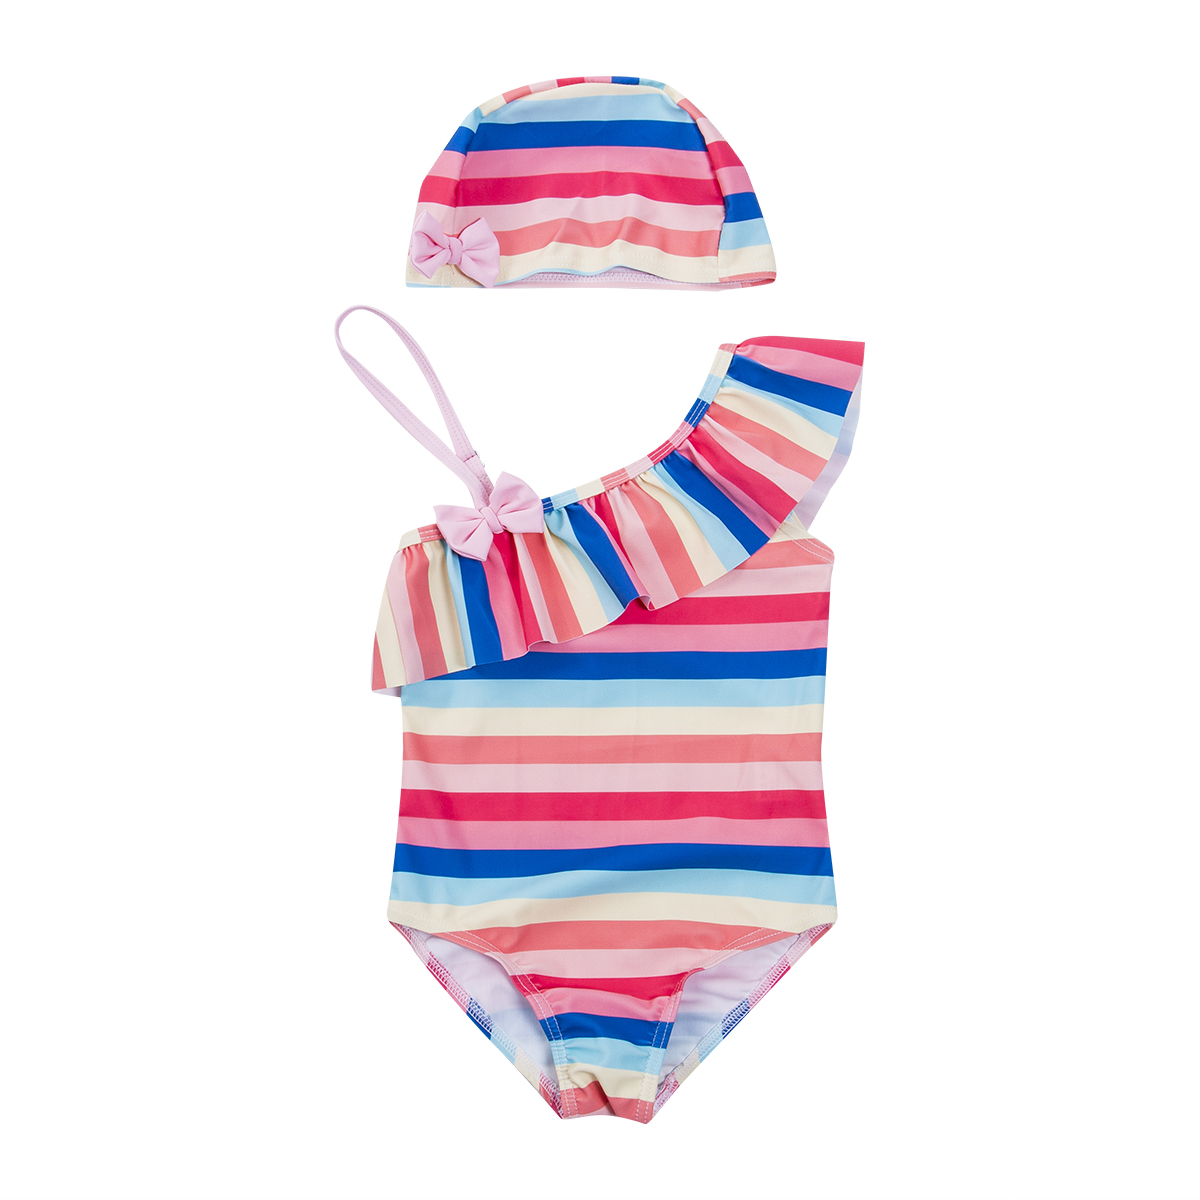 1c67683dce3a4 Buy rainbow striped bodysuit baby and get free shipping on AliExpress.com